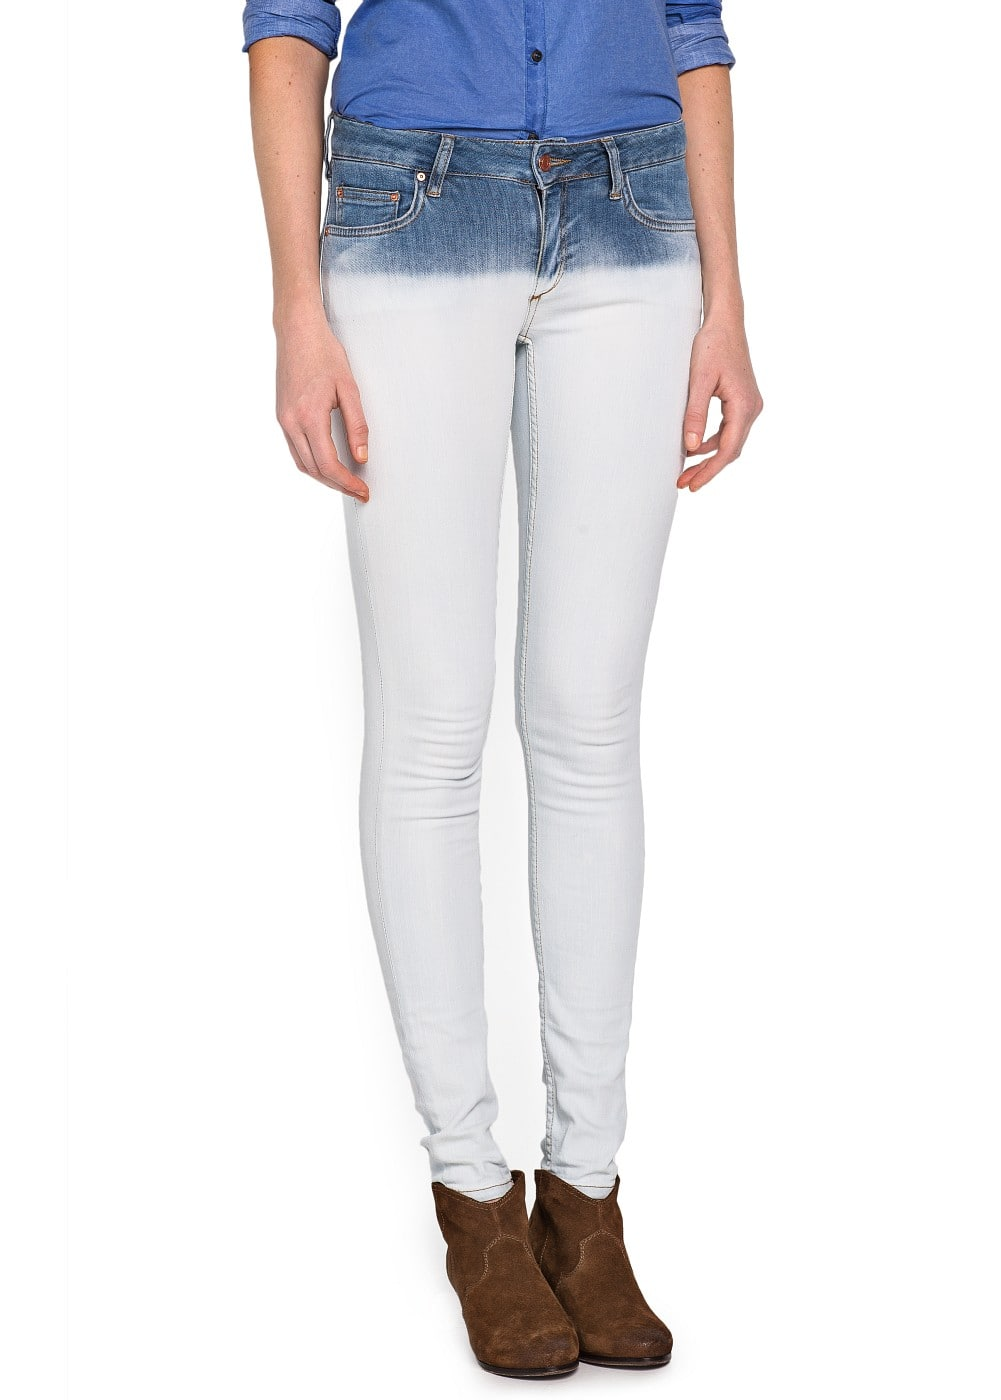 Super slim-fit Dye jeans